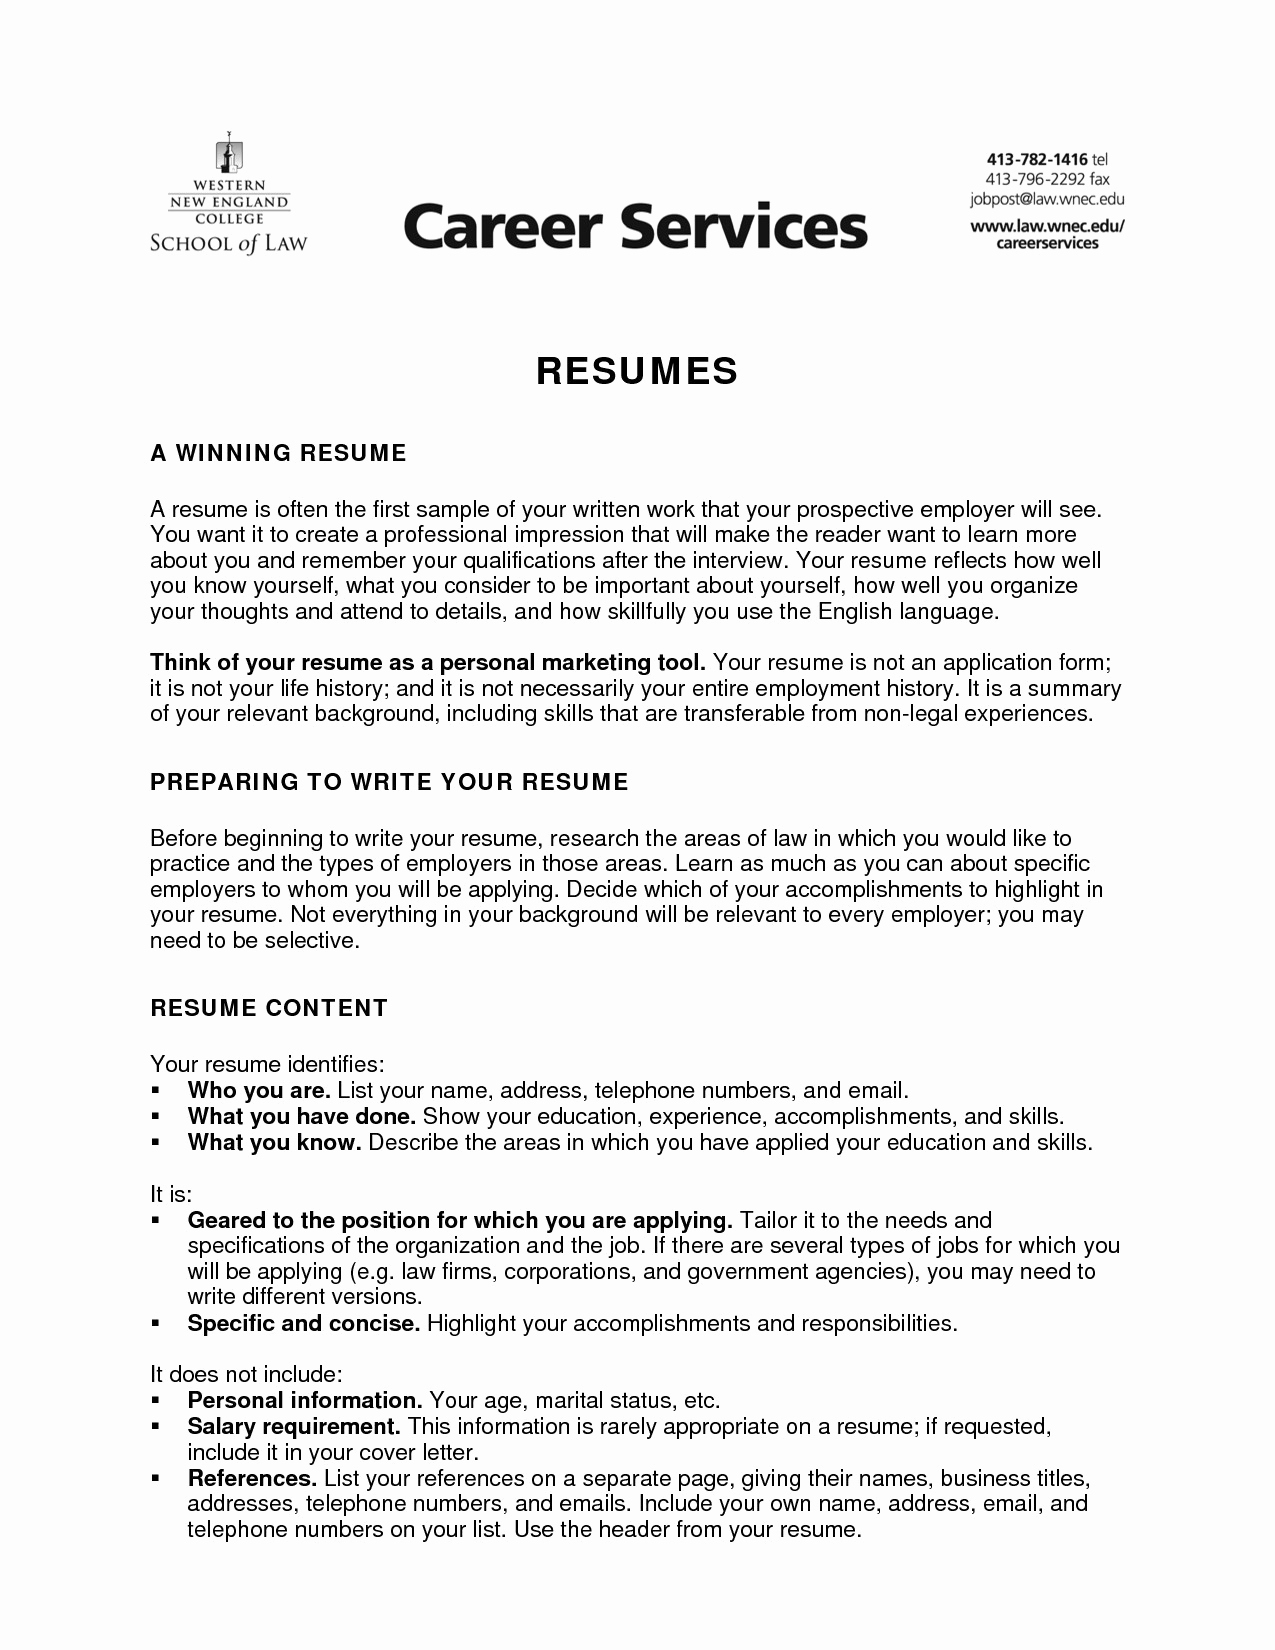 Substitute Teacher Duties Resume - Substitute Teacher Duties Resume Teaching Cover Letters